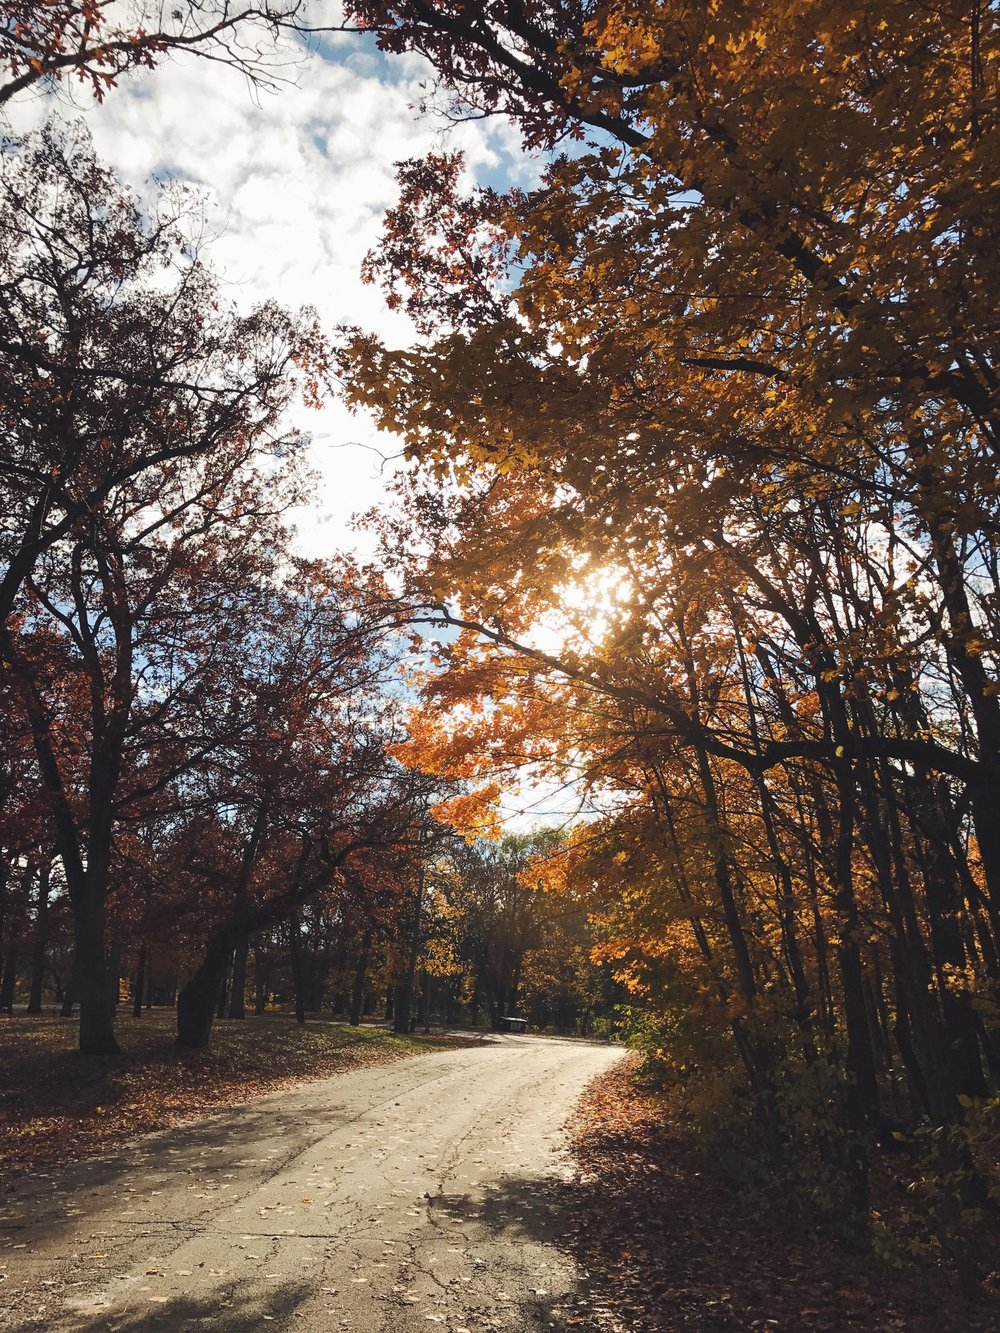 fall-trees-pathway-golden-light.jpg